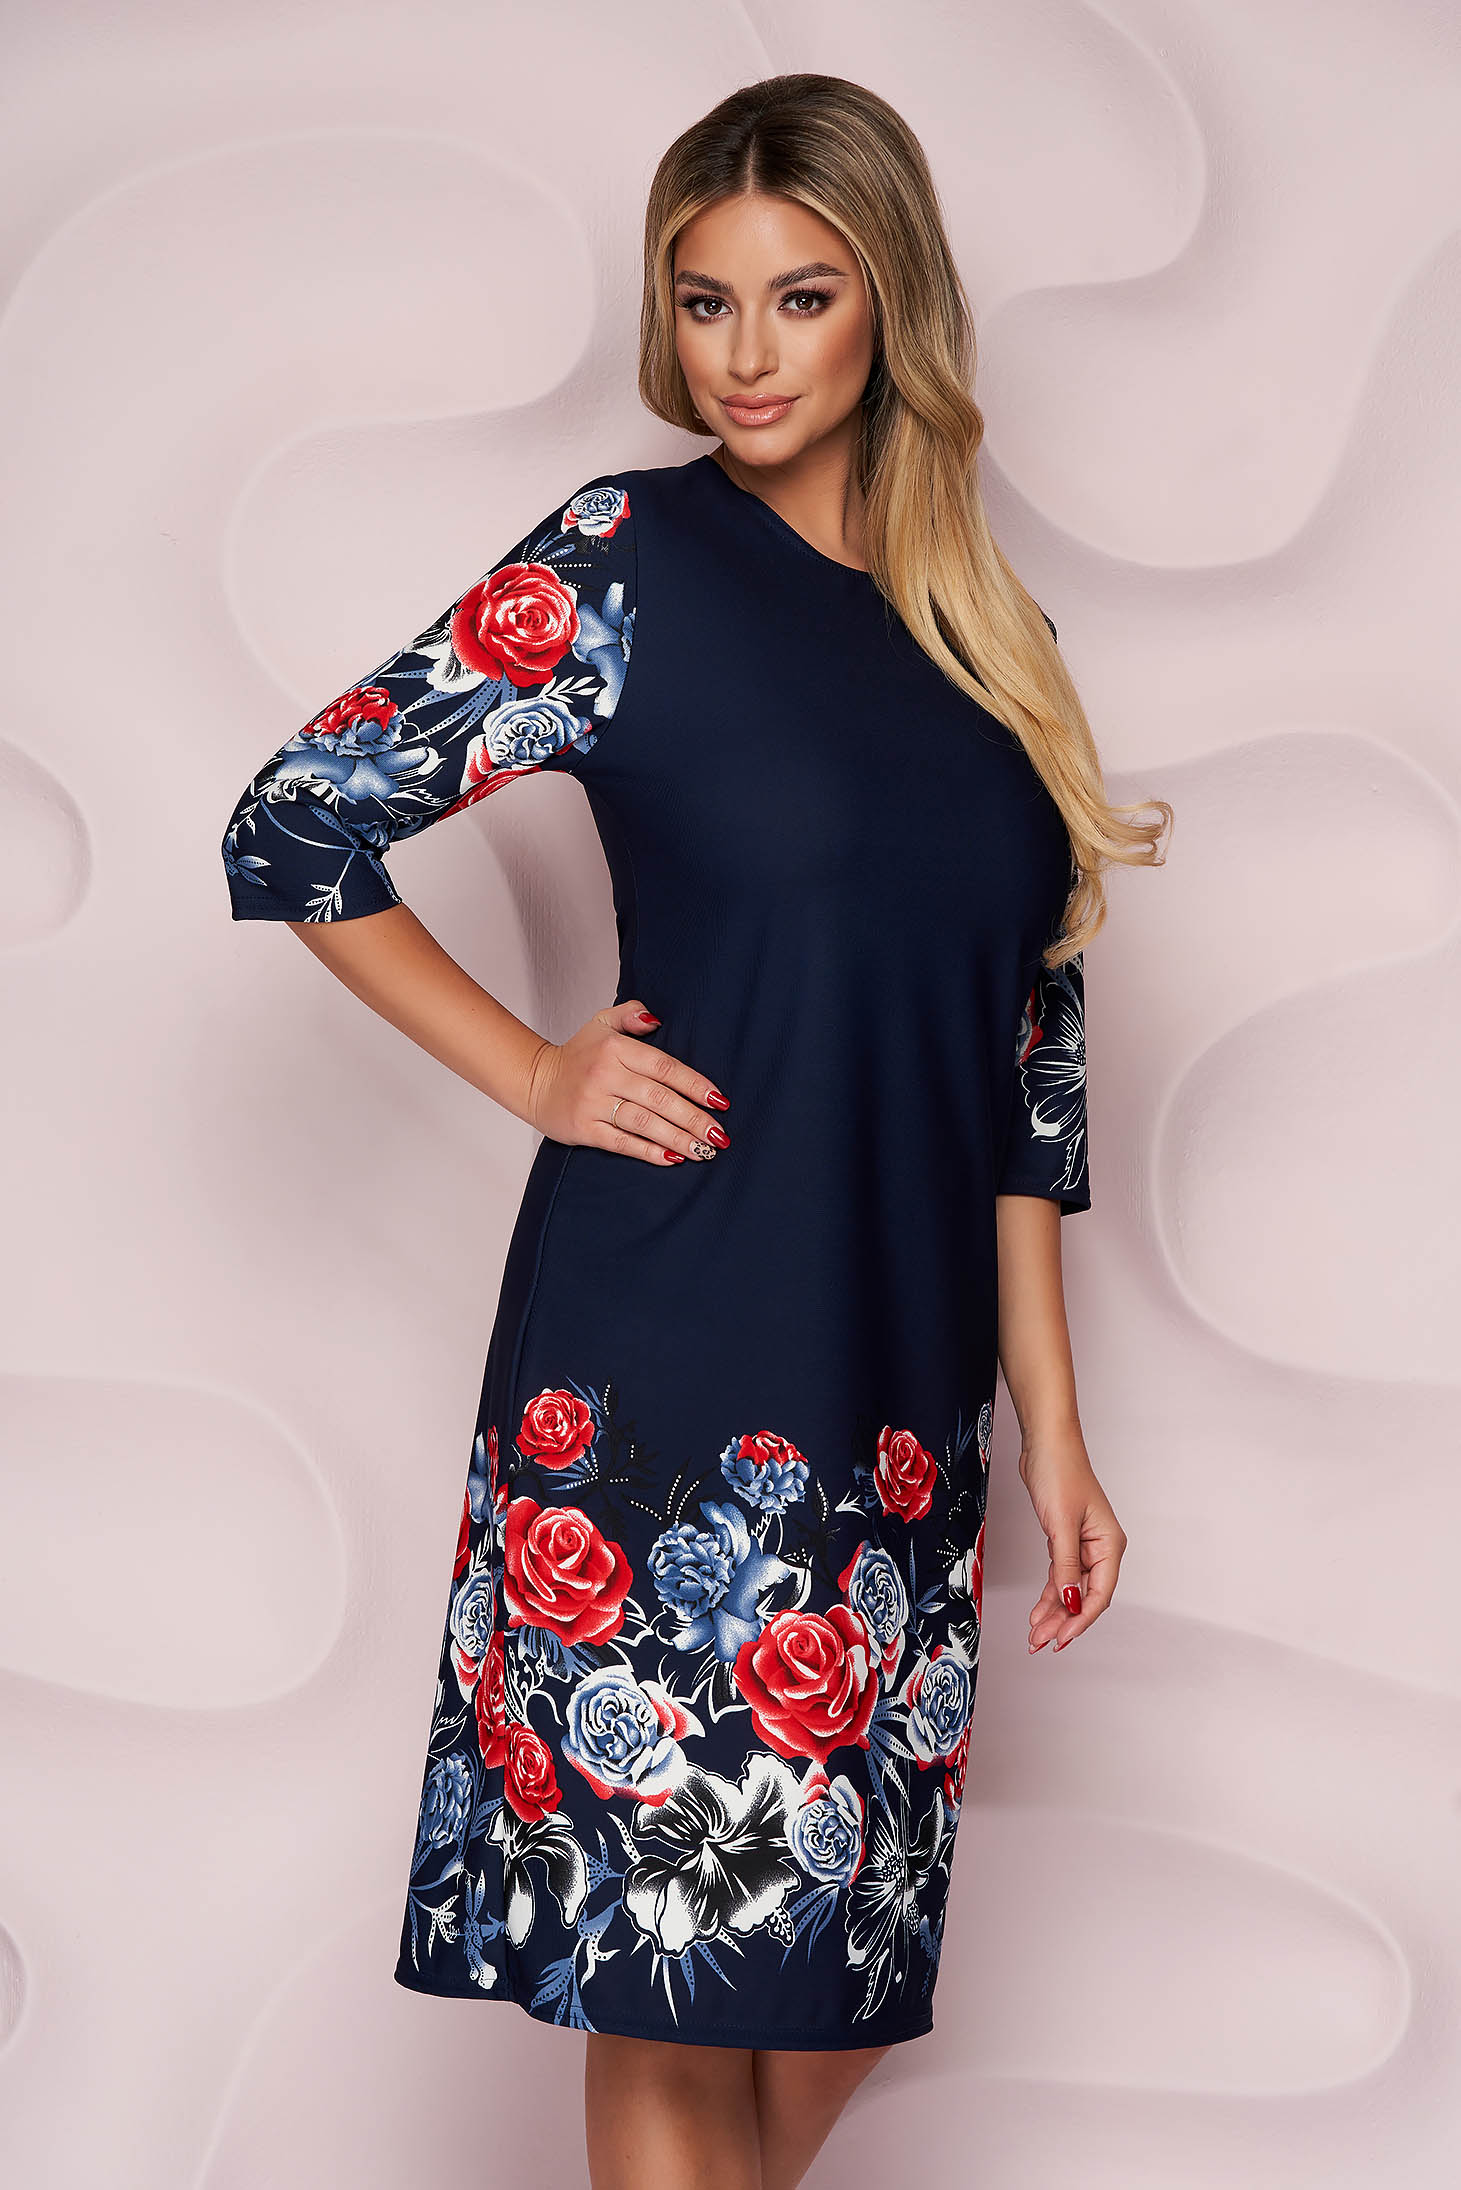 Dress office straight slightly elastic fabric midi light material with floral print